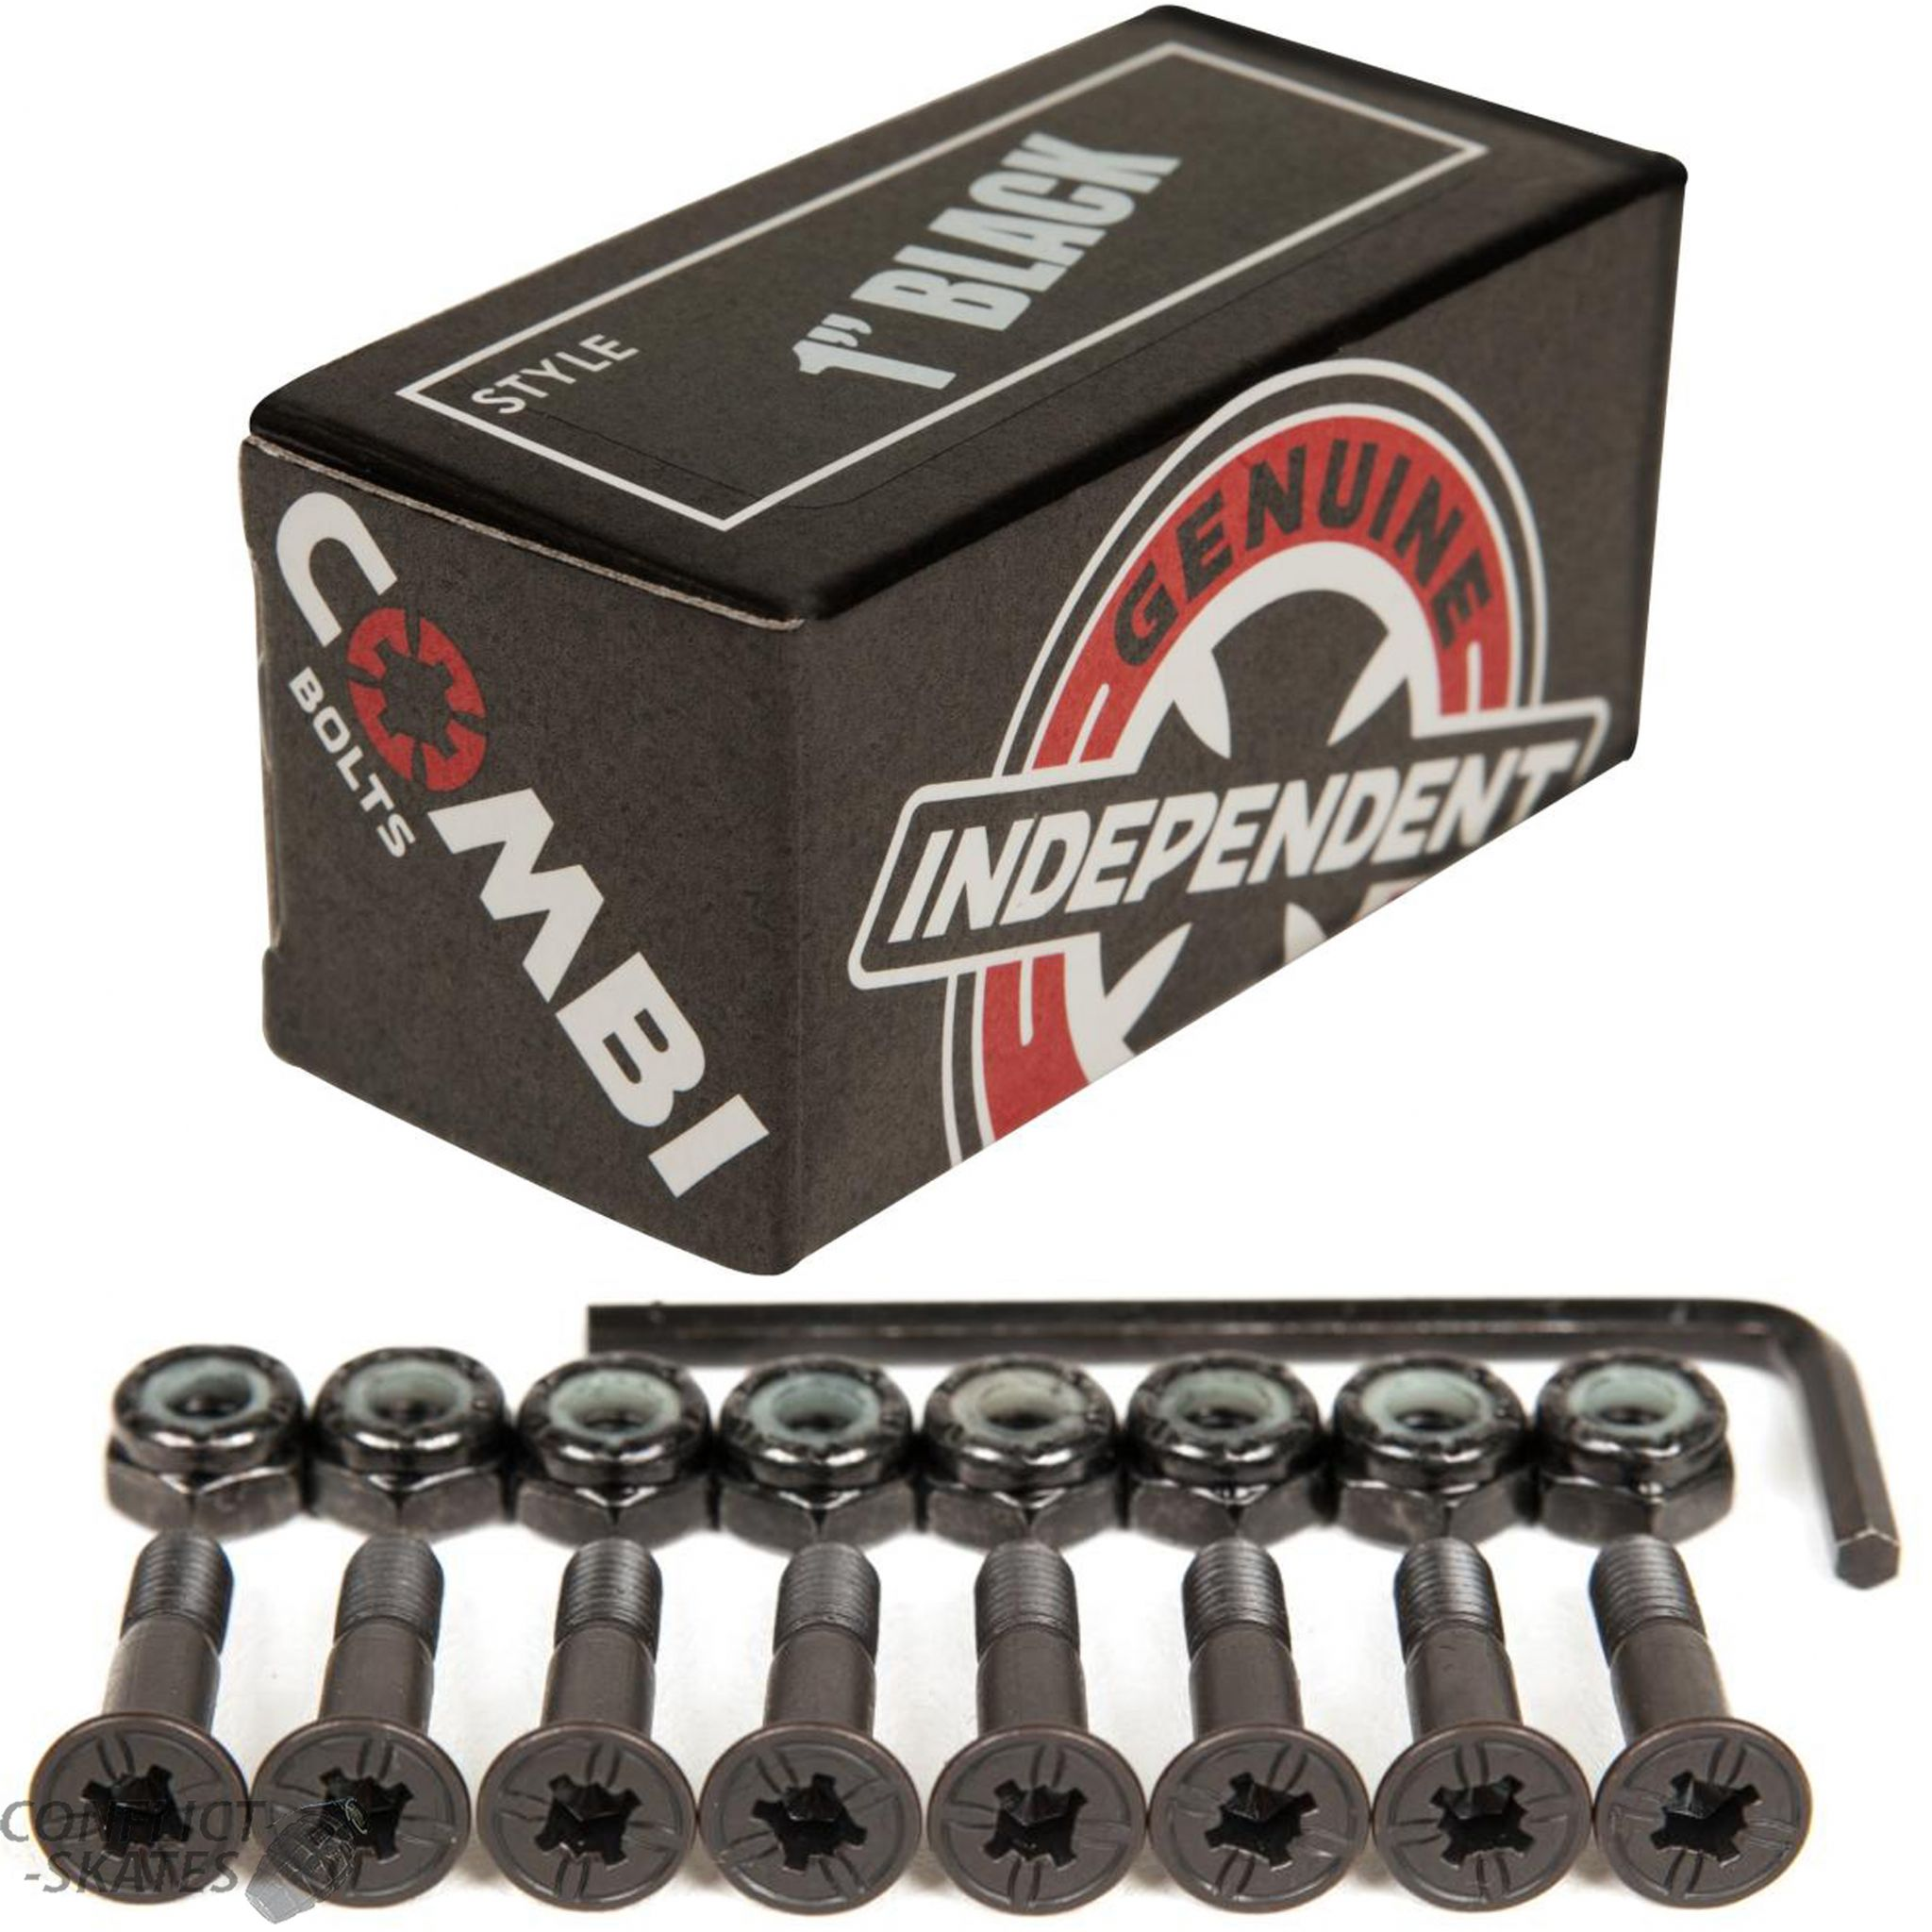 INDEPENDENT Combi Skateboard Truck Mounting Bolts 1 ...